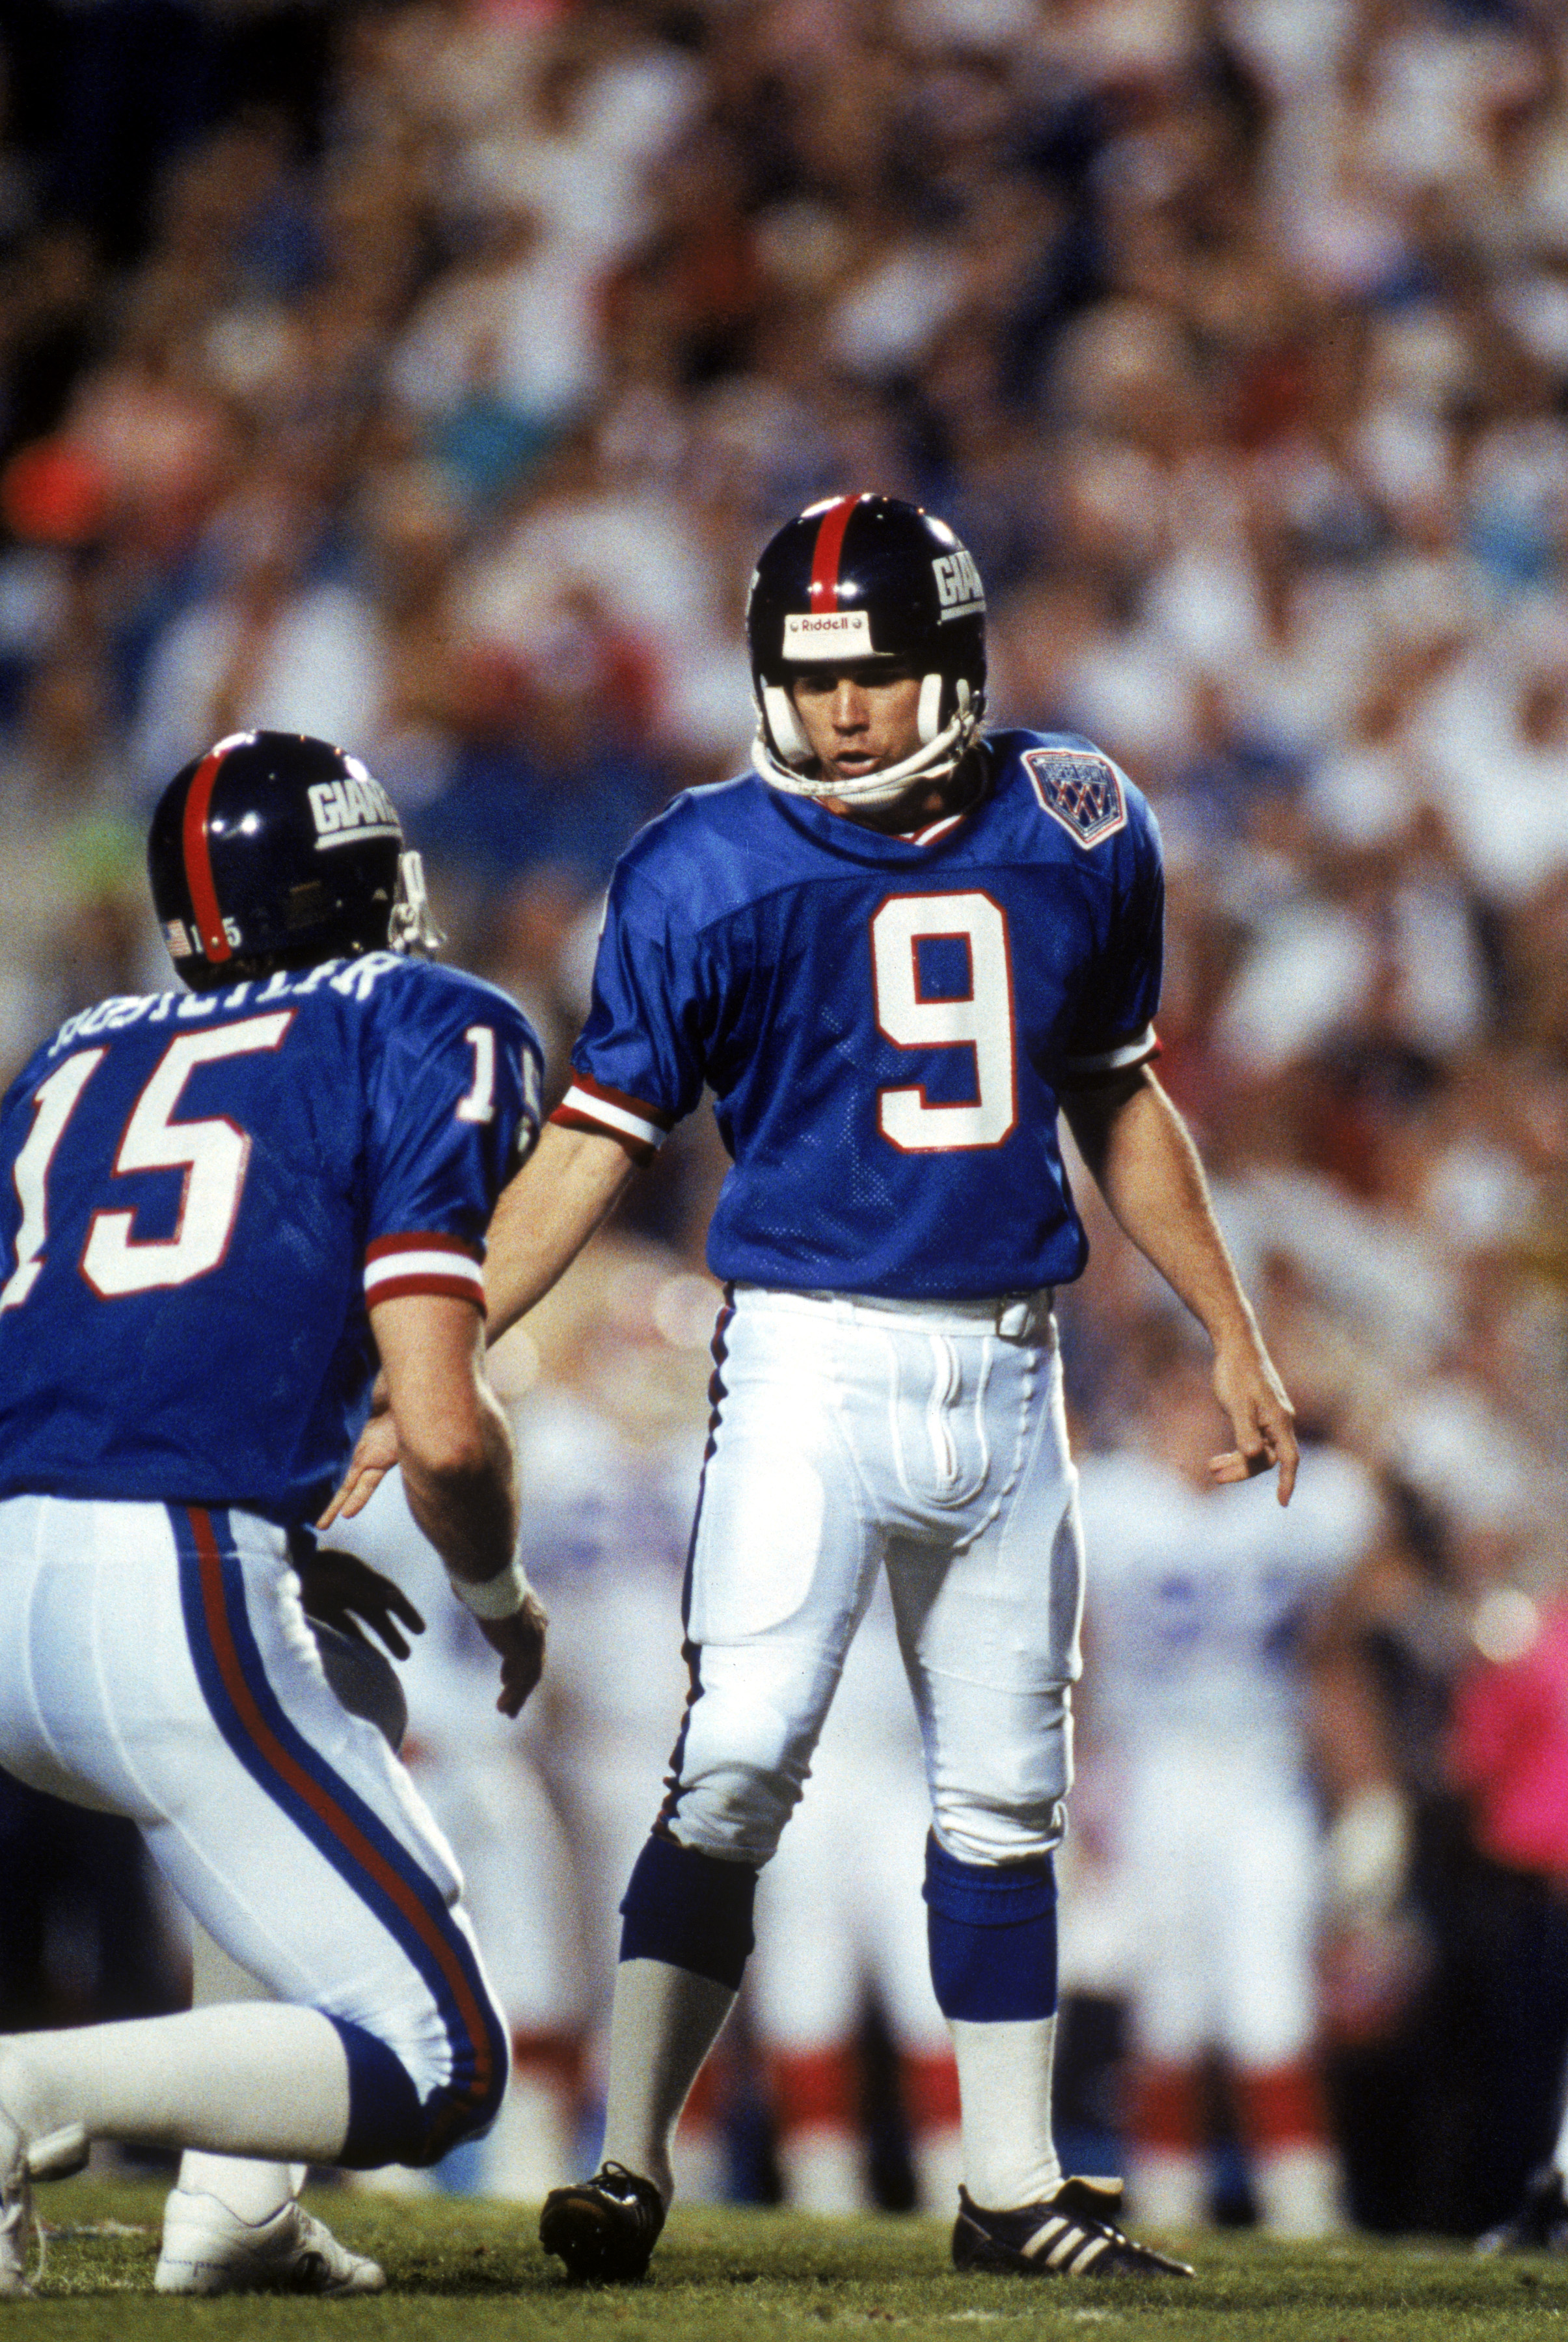 TAMPA, FL - JANUARY 27:  Kicker Matt Bahr #9 and holder Jeff Hostetler #15 of the New York Giants react after Bahr kicked a field goal against the Buffalo Bills during Super Bowl XXV at Tampa Stadium on January 27, 1991 in Tampa, Florida. The Giants defea